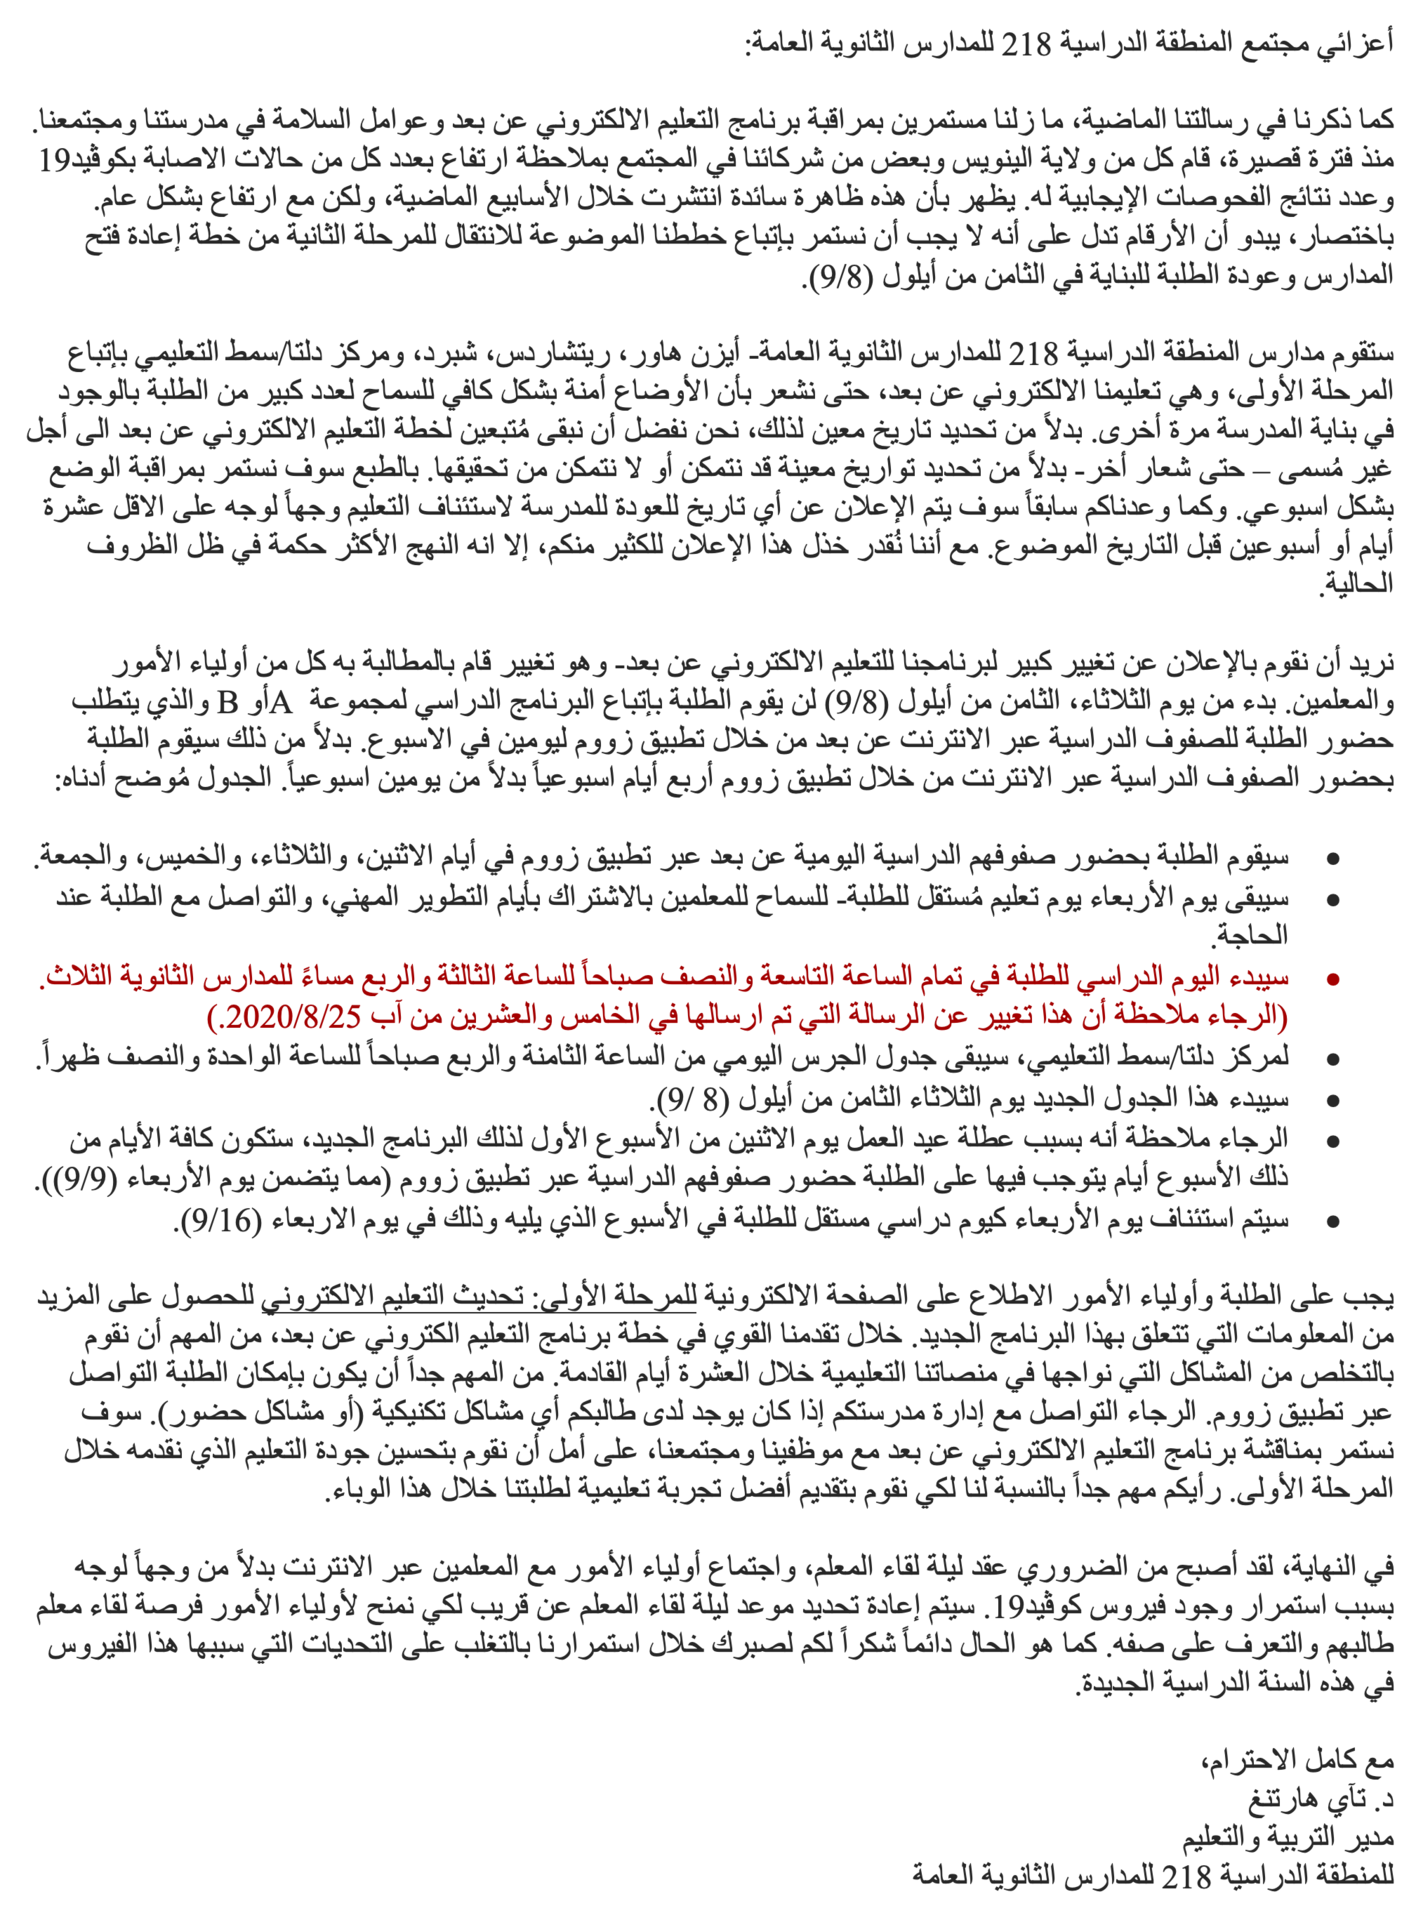 Reopening Extension - Arabic